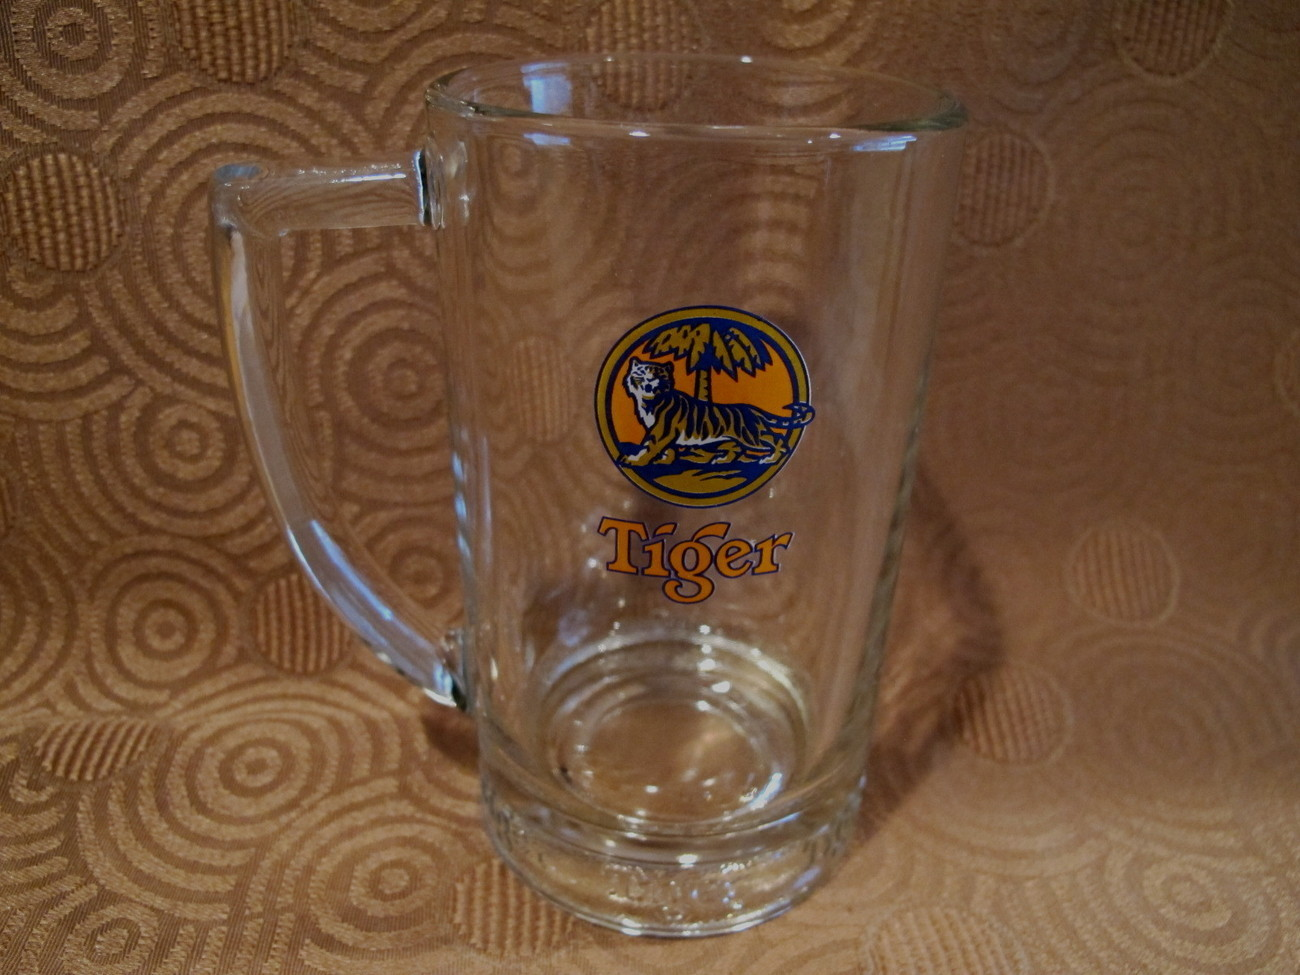 TIGER BEER Mug Vintage Souvenir Glass Stein Singapore Brewery Asian